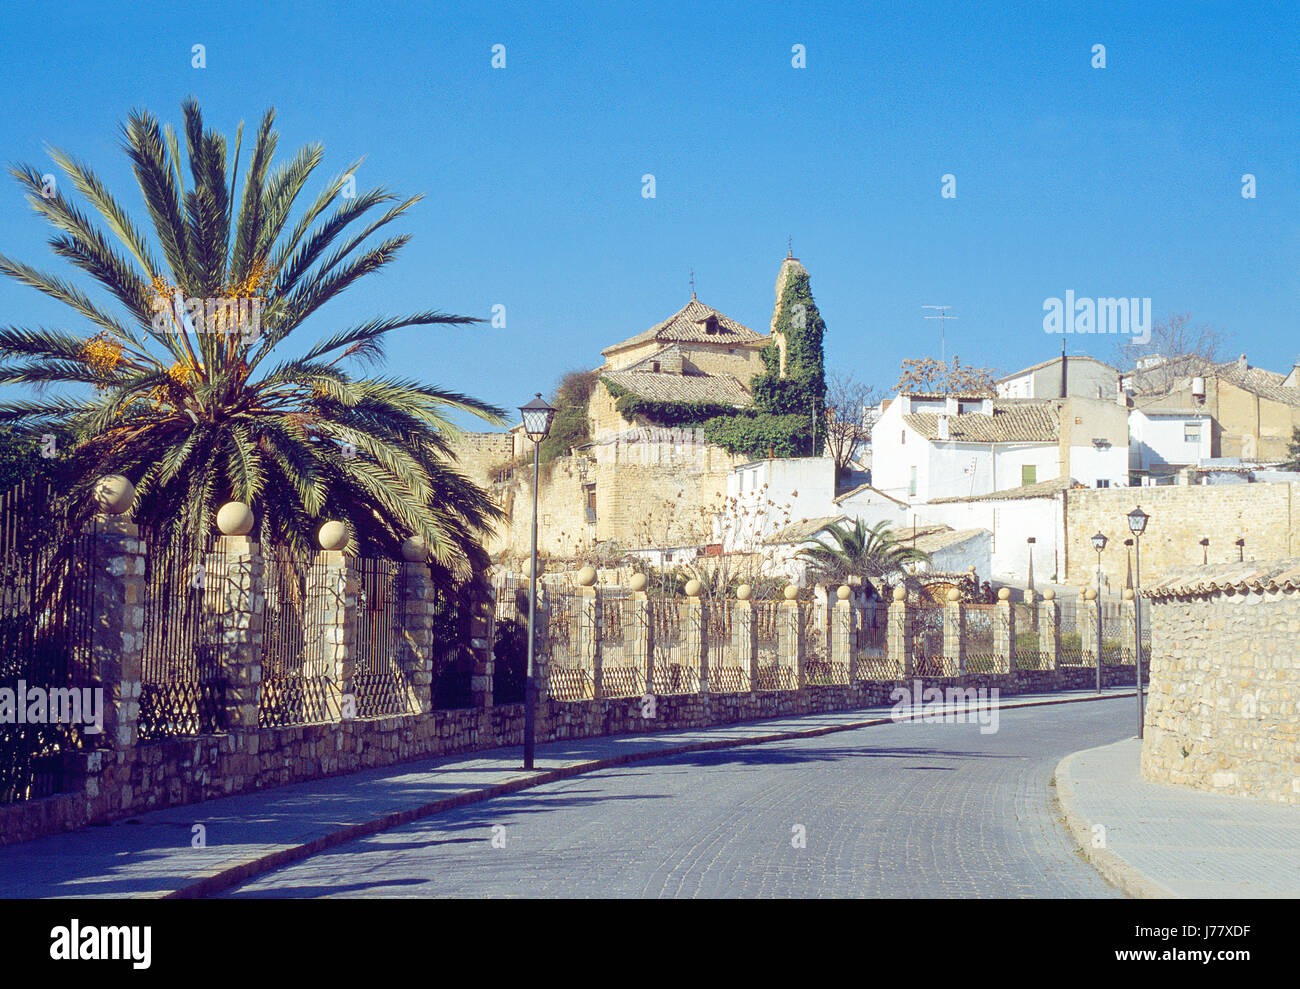 Street. Ubeda, Jaen province, Andalucia, Spain. Stock Photo